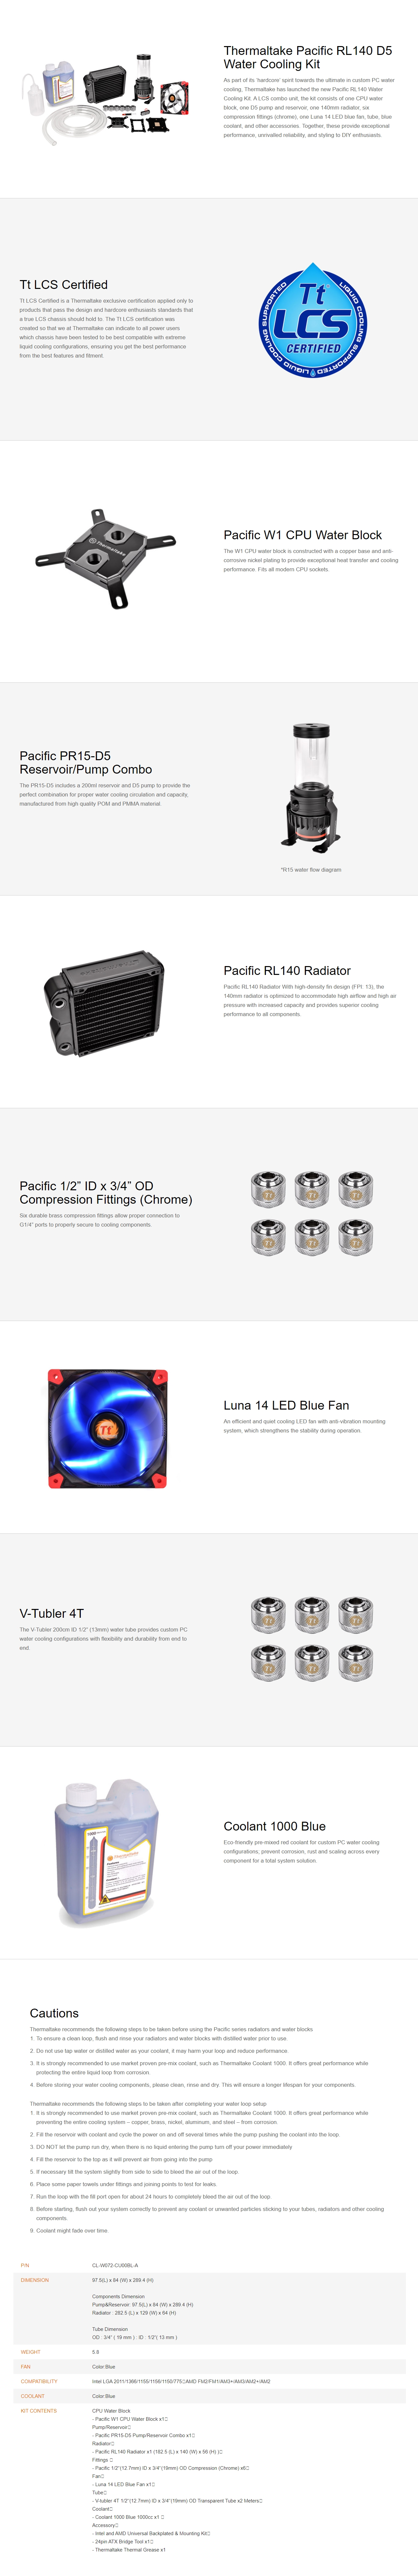 A large marketing image providing additional information about the product Thermaltake Pacific RL140 D5 Water Cooling Kit - Additional alt info not provided